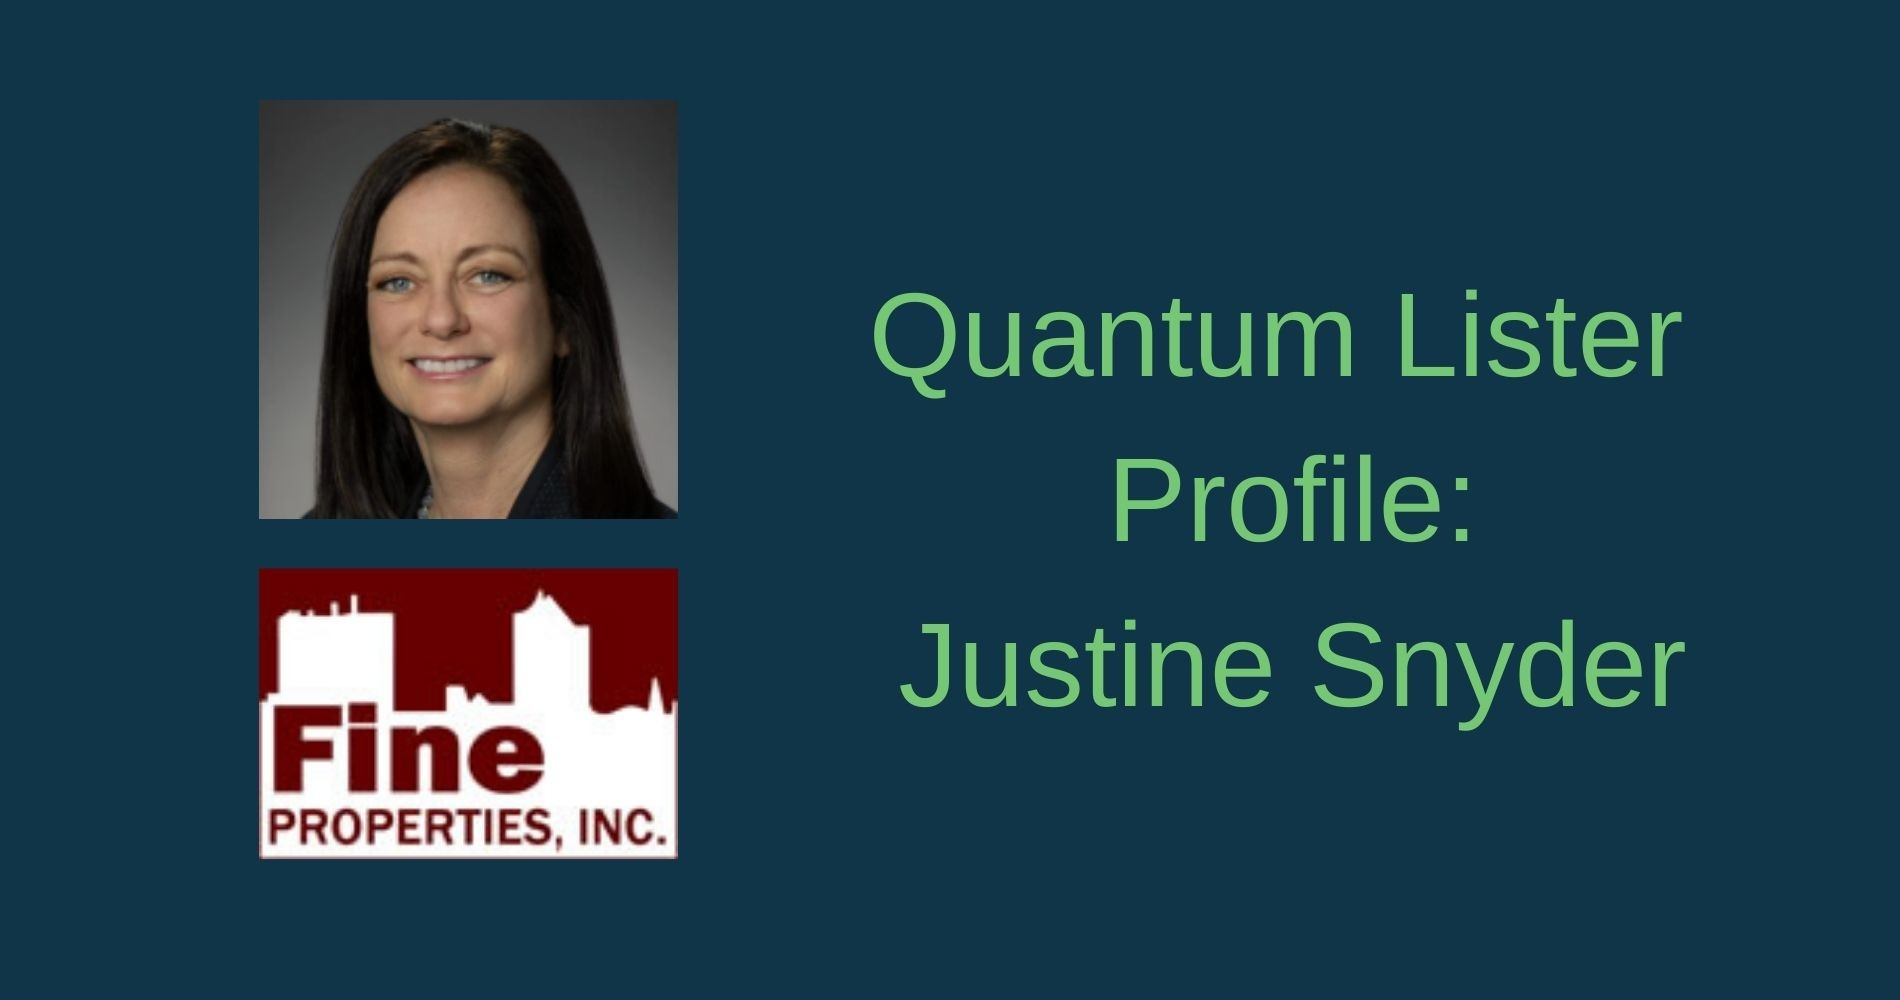 Quantum Lister Profile: Justine Snyder of Fine Properties Inc.